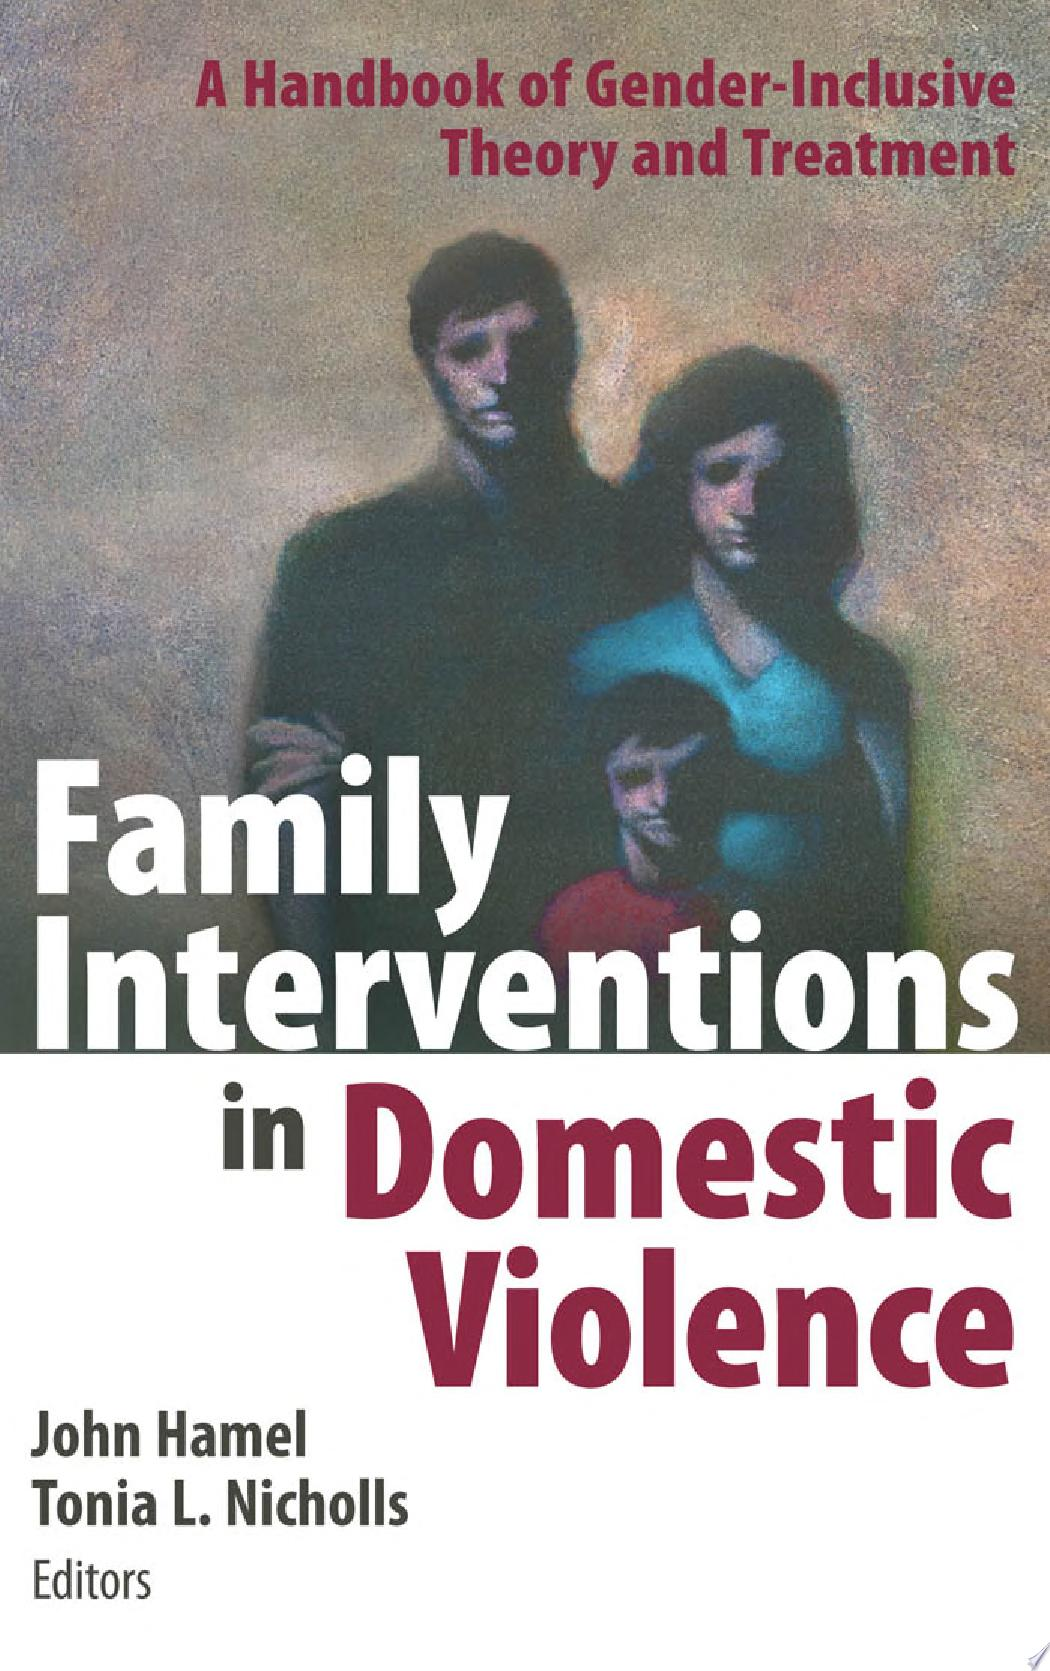 Family Interventions in Domestic Violence